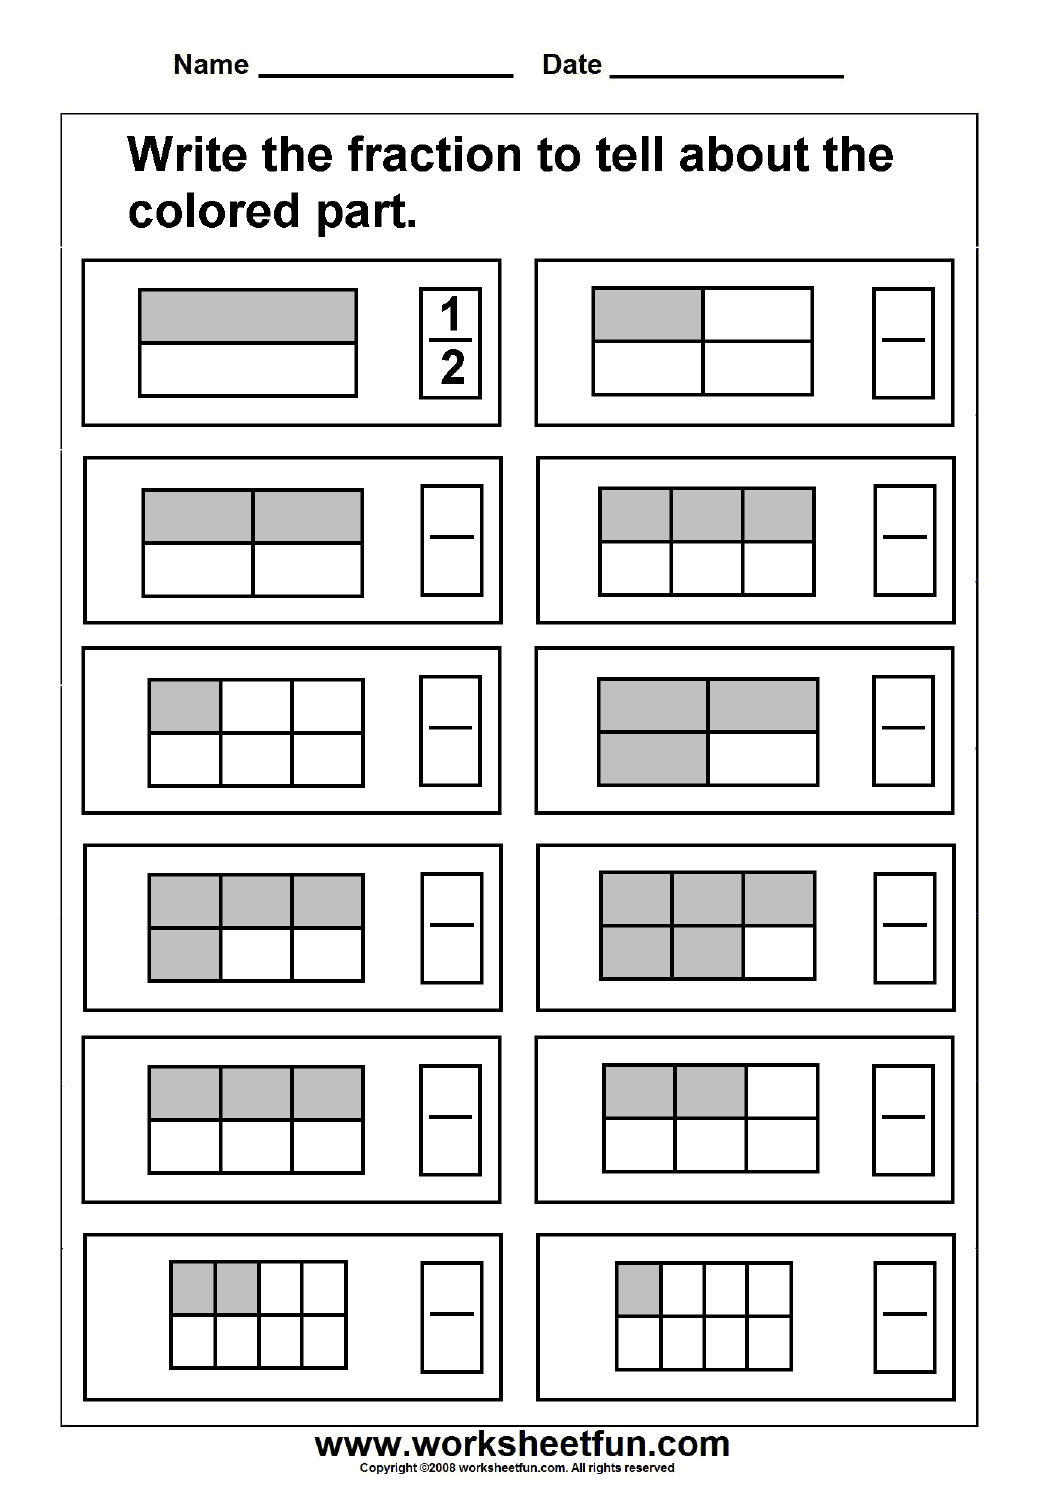 worksheet Free Worksheets On Fractions fraction model 3 worksheets free printable worksheet model